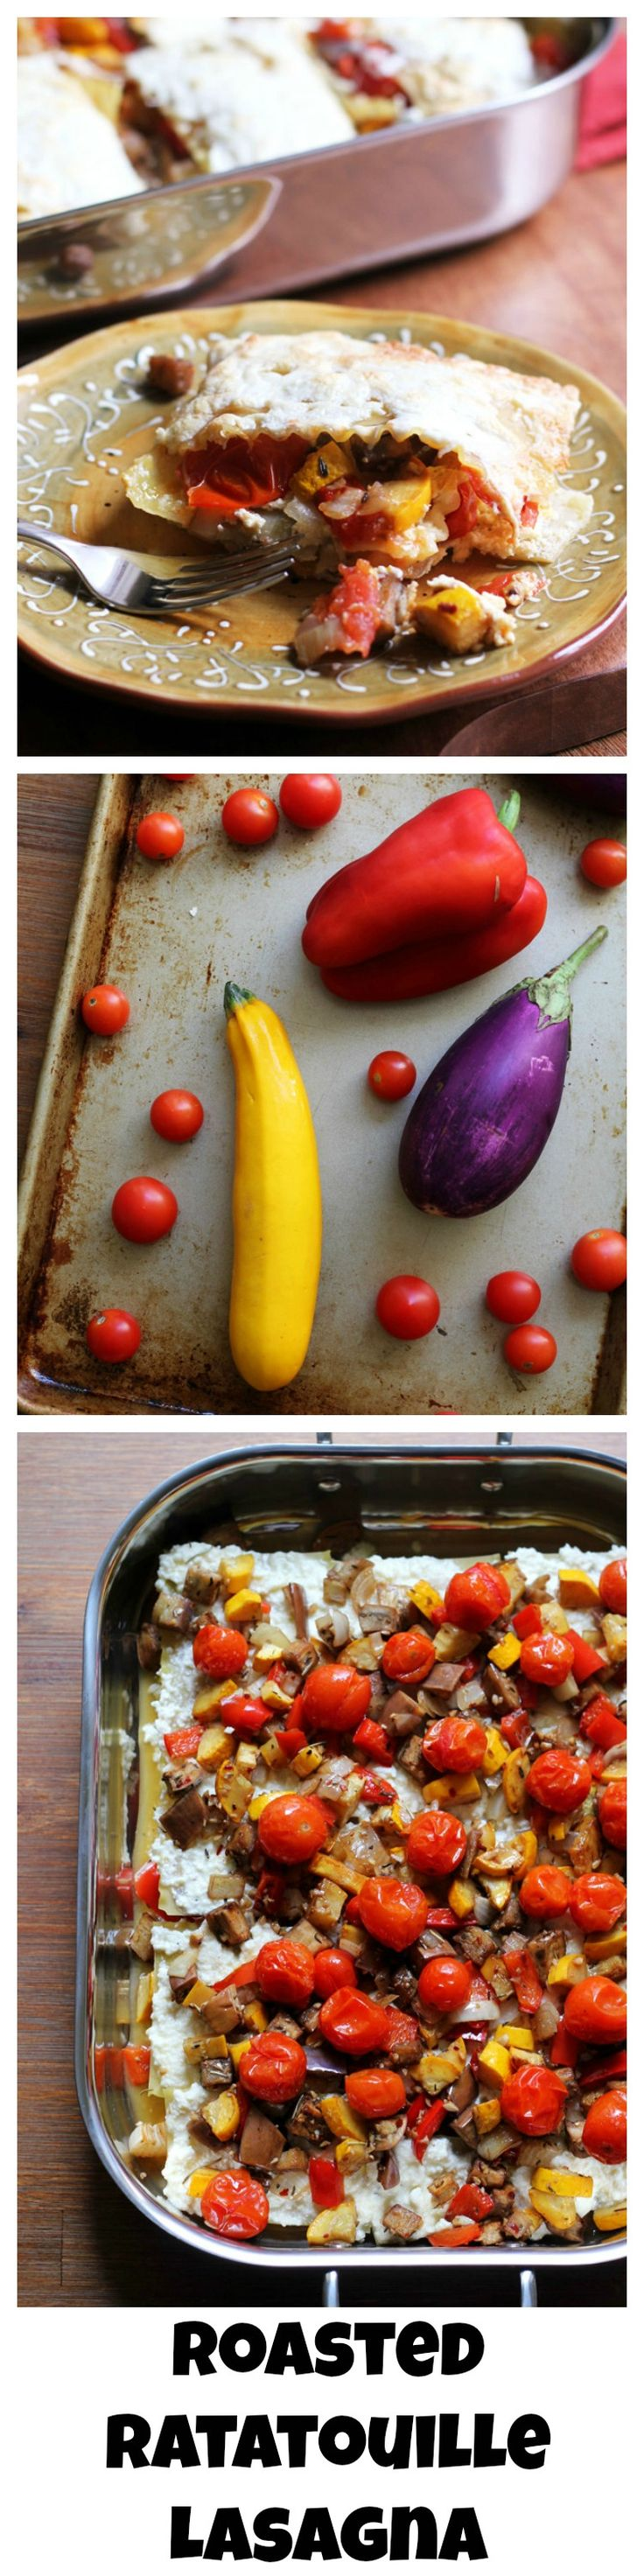 Ratatouille lasagna takes all of the veggies that go into the ...